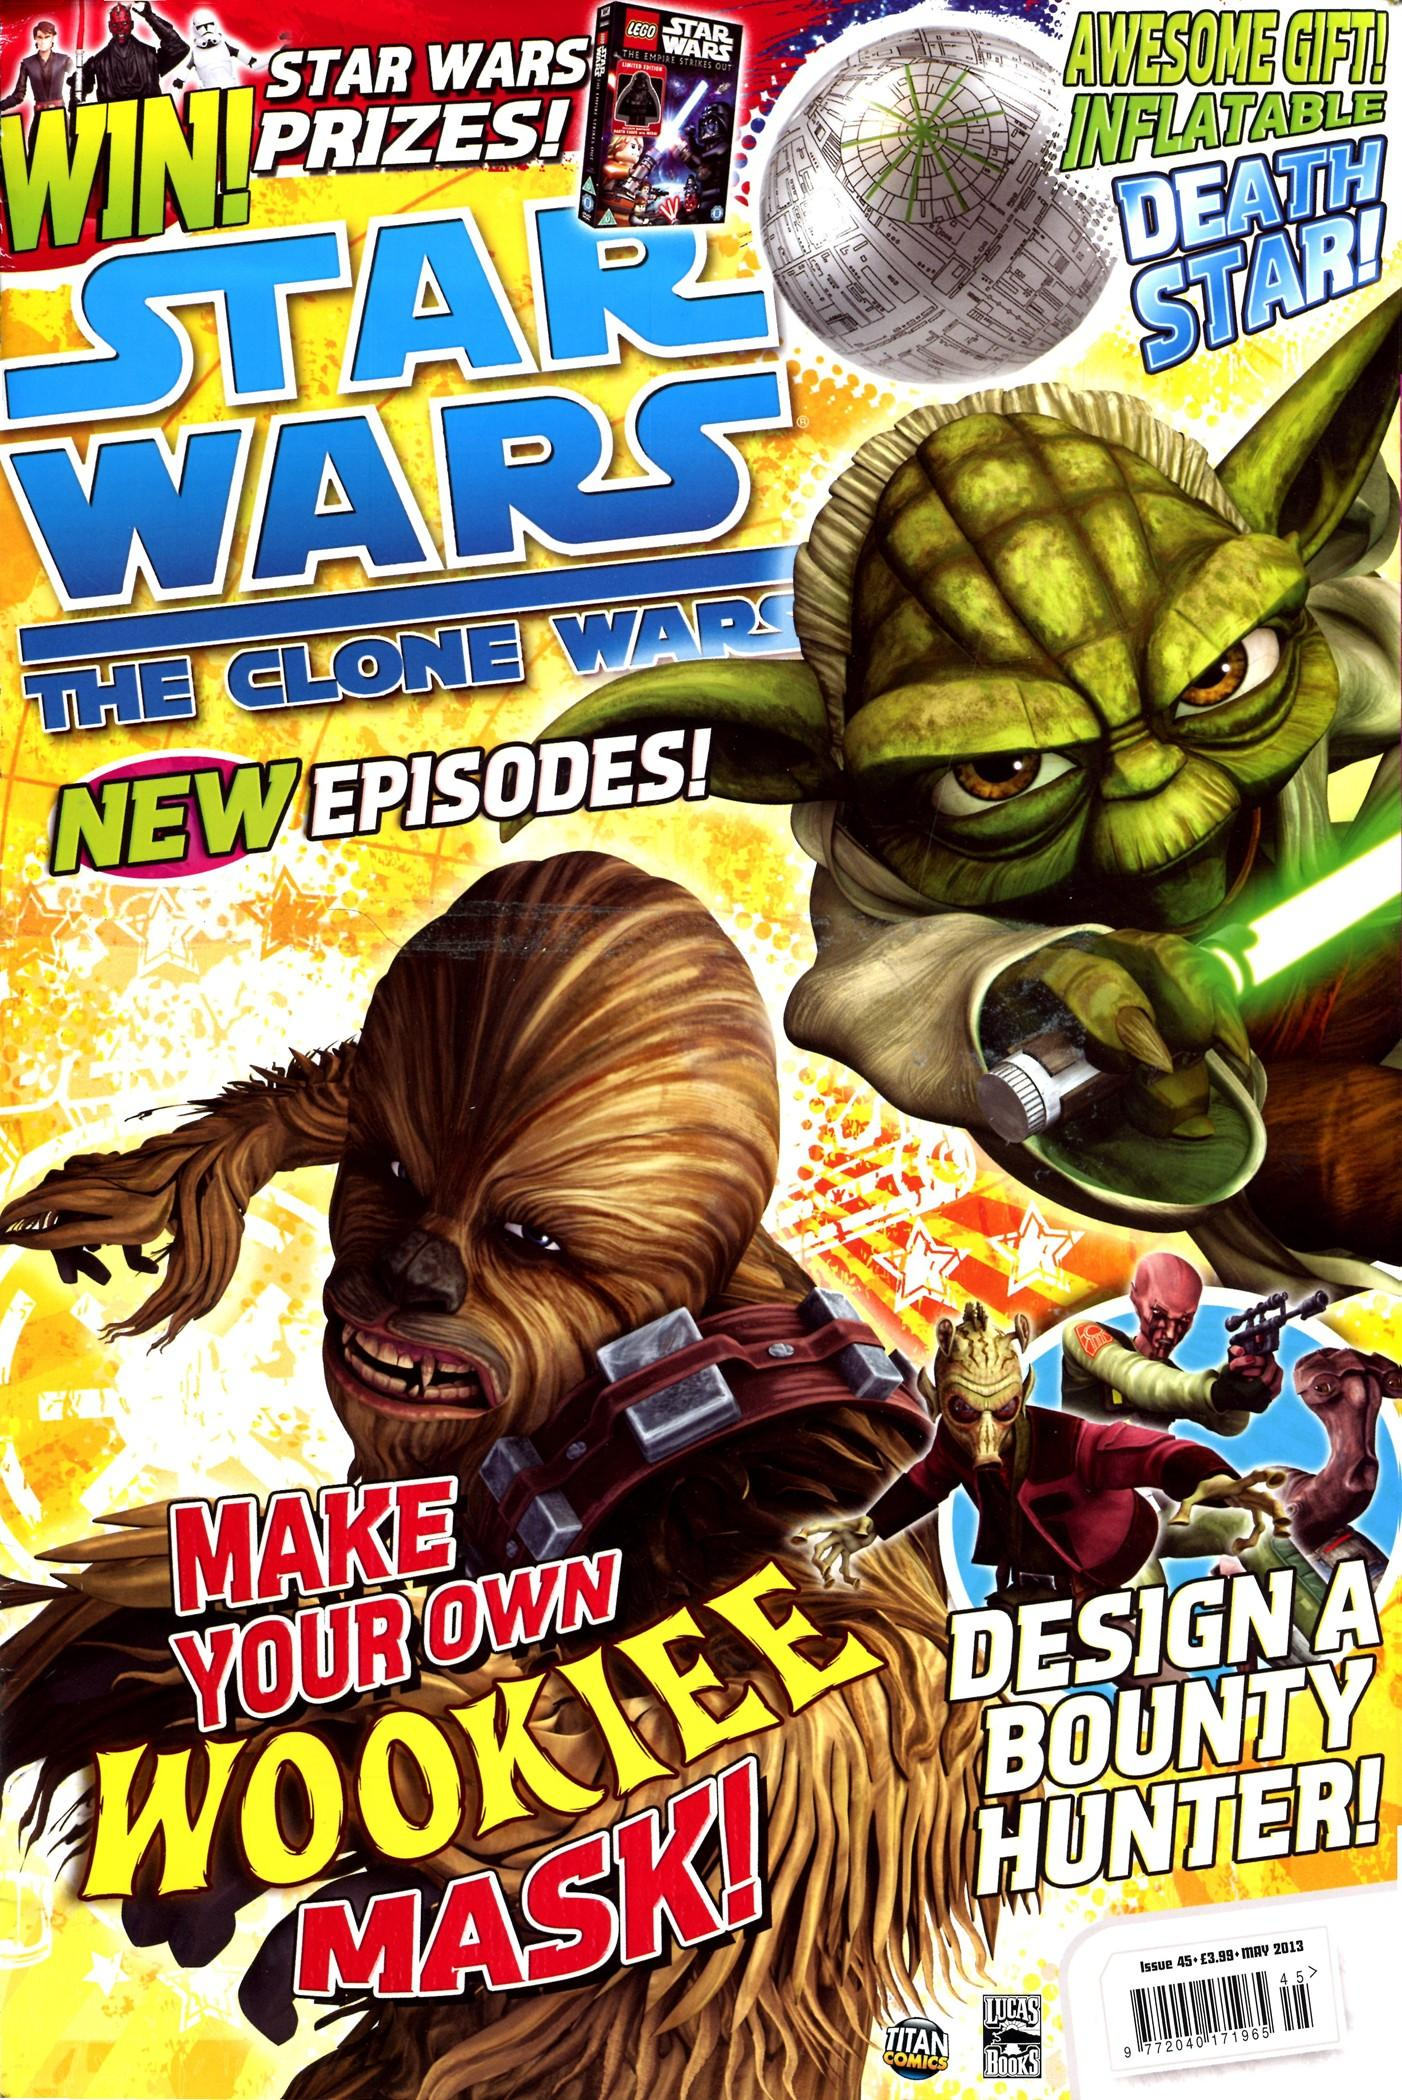 Star Wars: The Clone Wars Comic UK 6.45